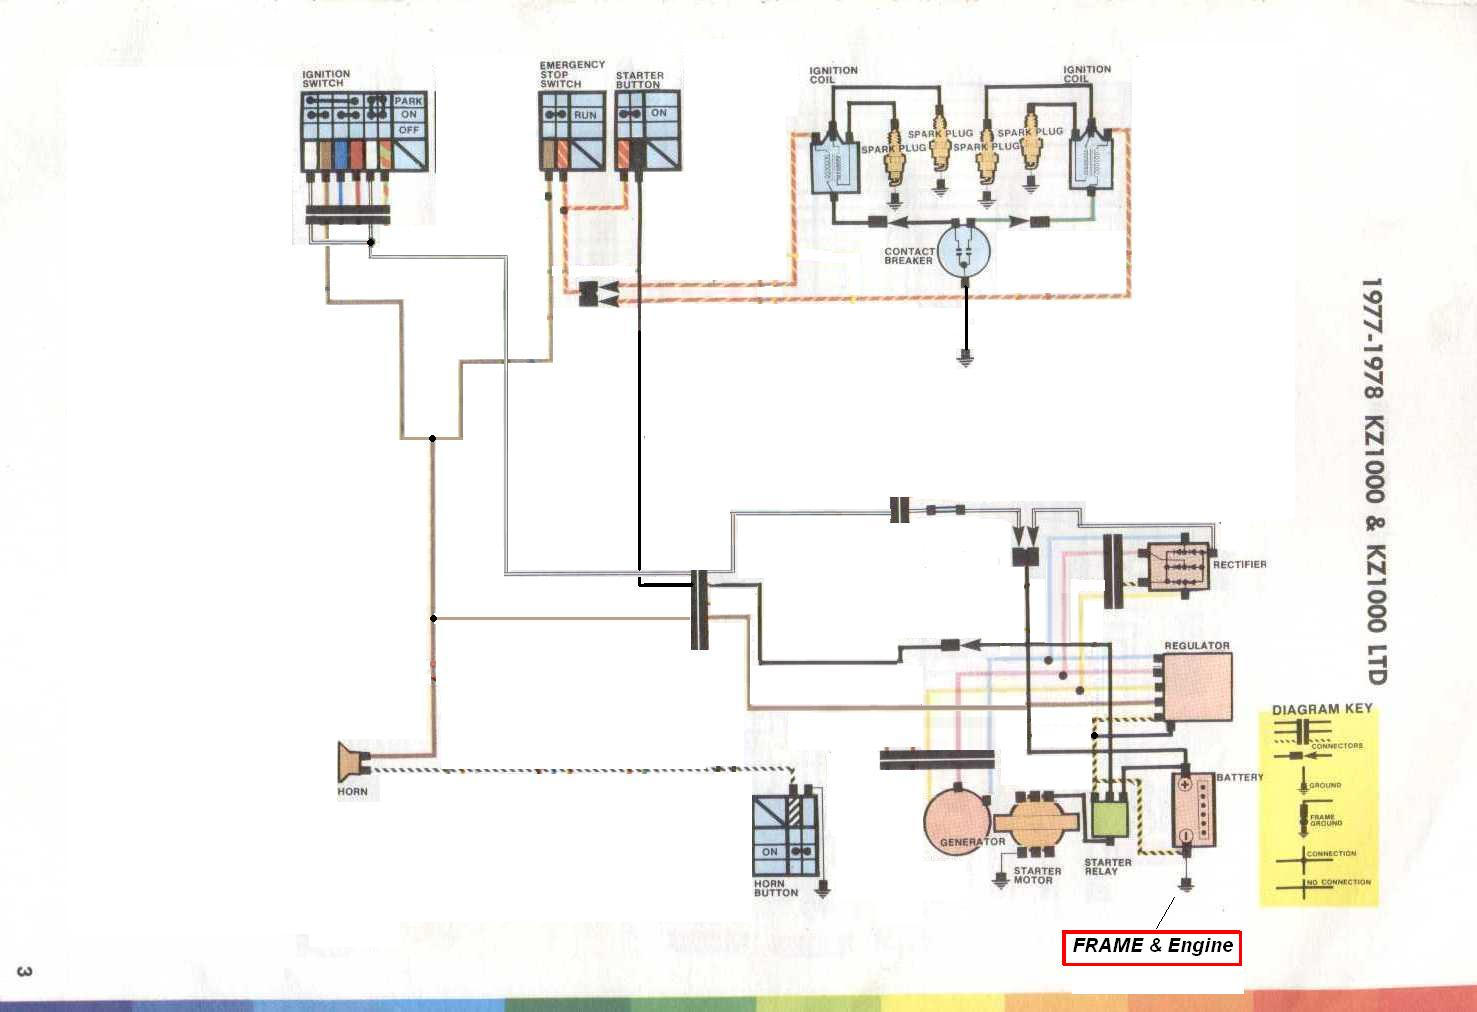 Diagram Dyna Ignition Coils Wiring Diagram For Kz1000 Mk2 1980 Full Version Hd Quality Mk2 1980 Diagramrochad Portaimprese It